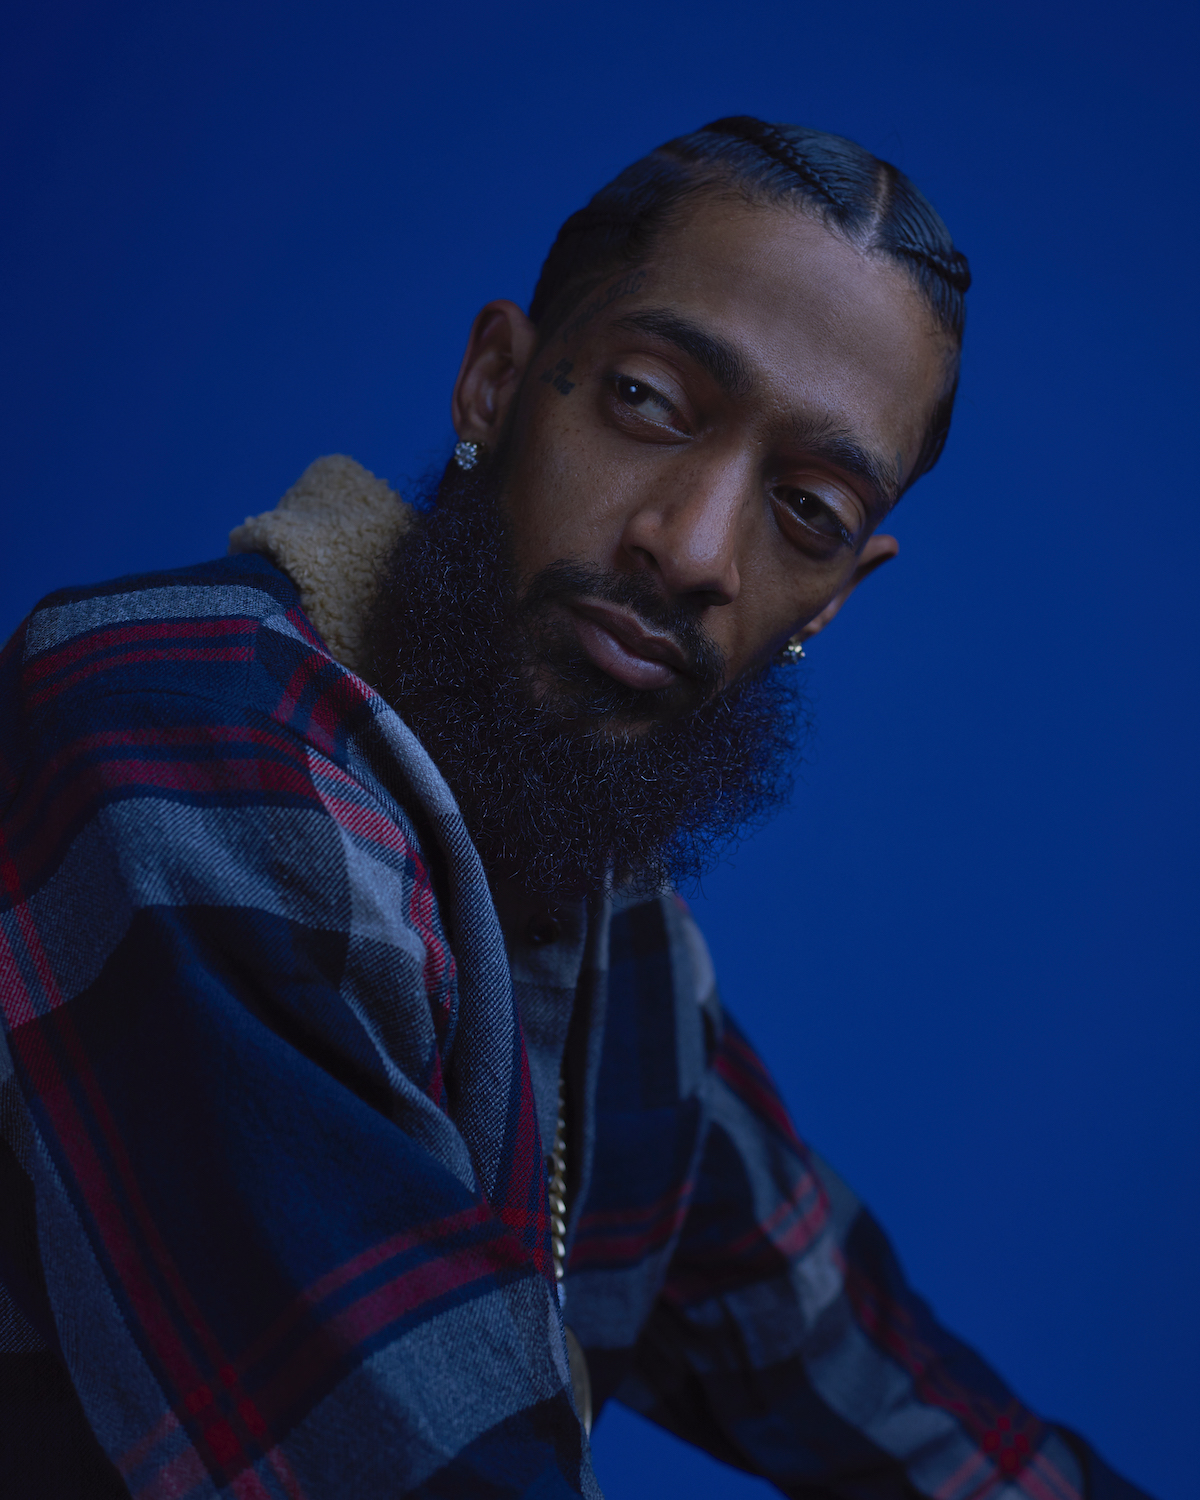 Portrait of Nipsey Hussle by Meron Menghistab